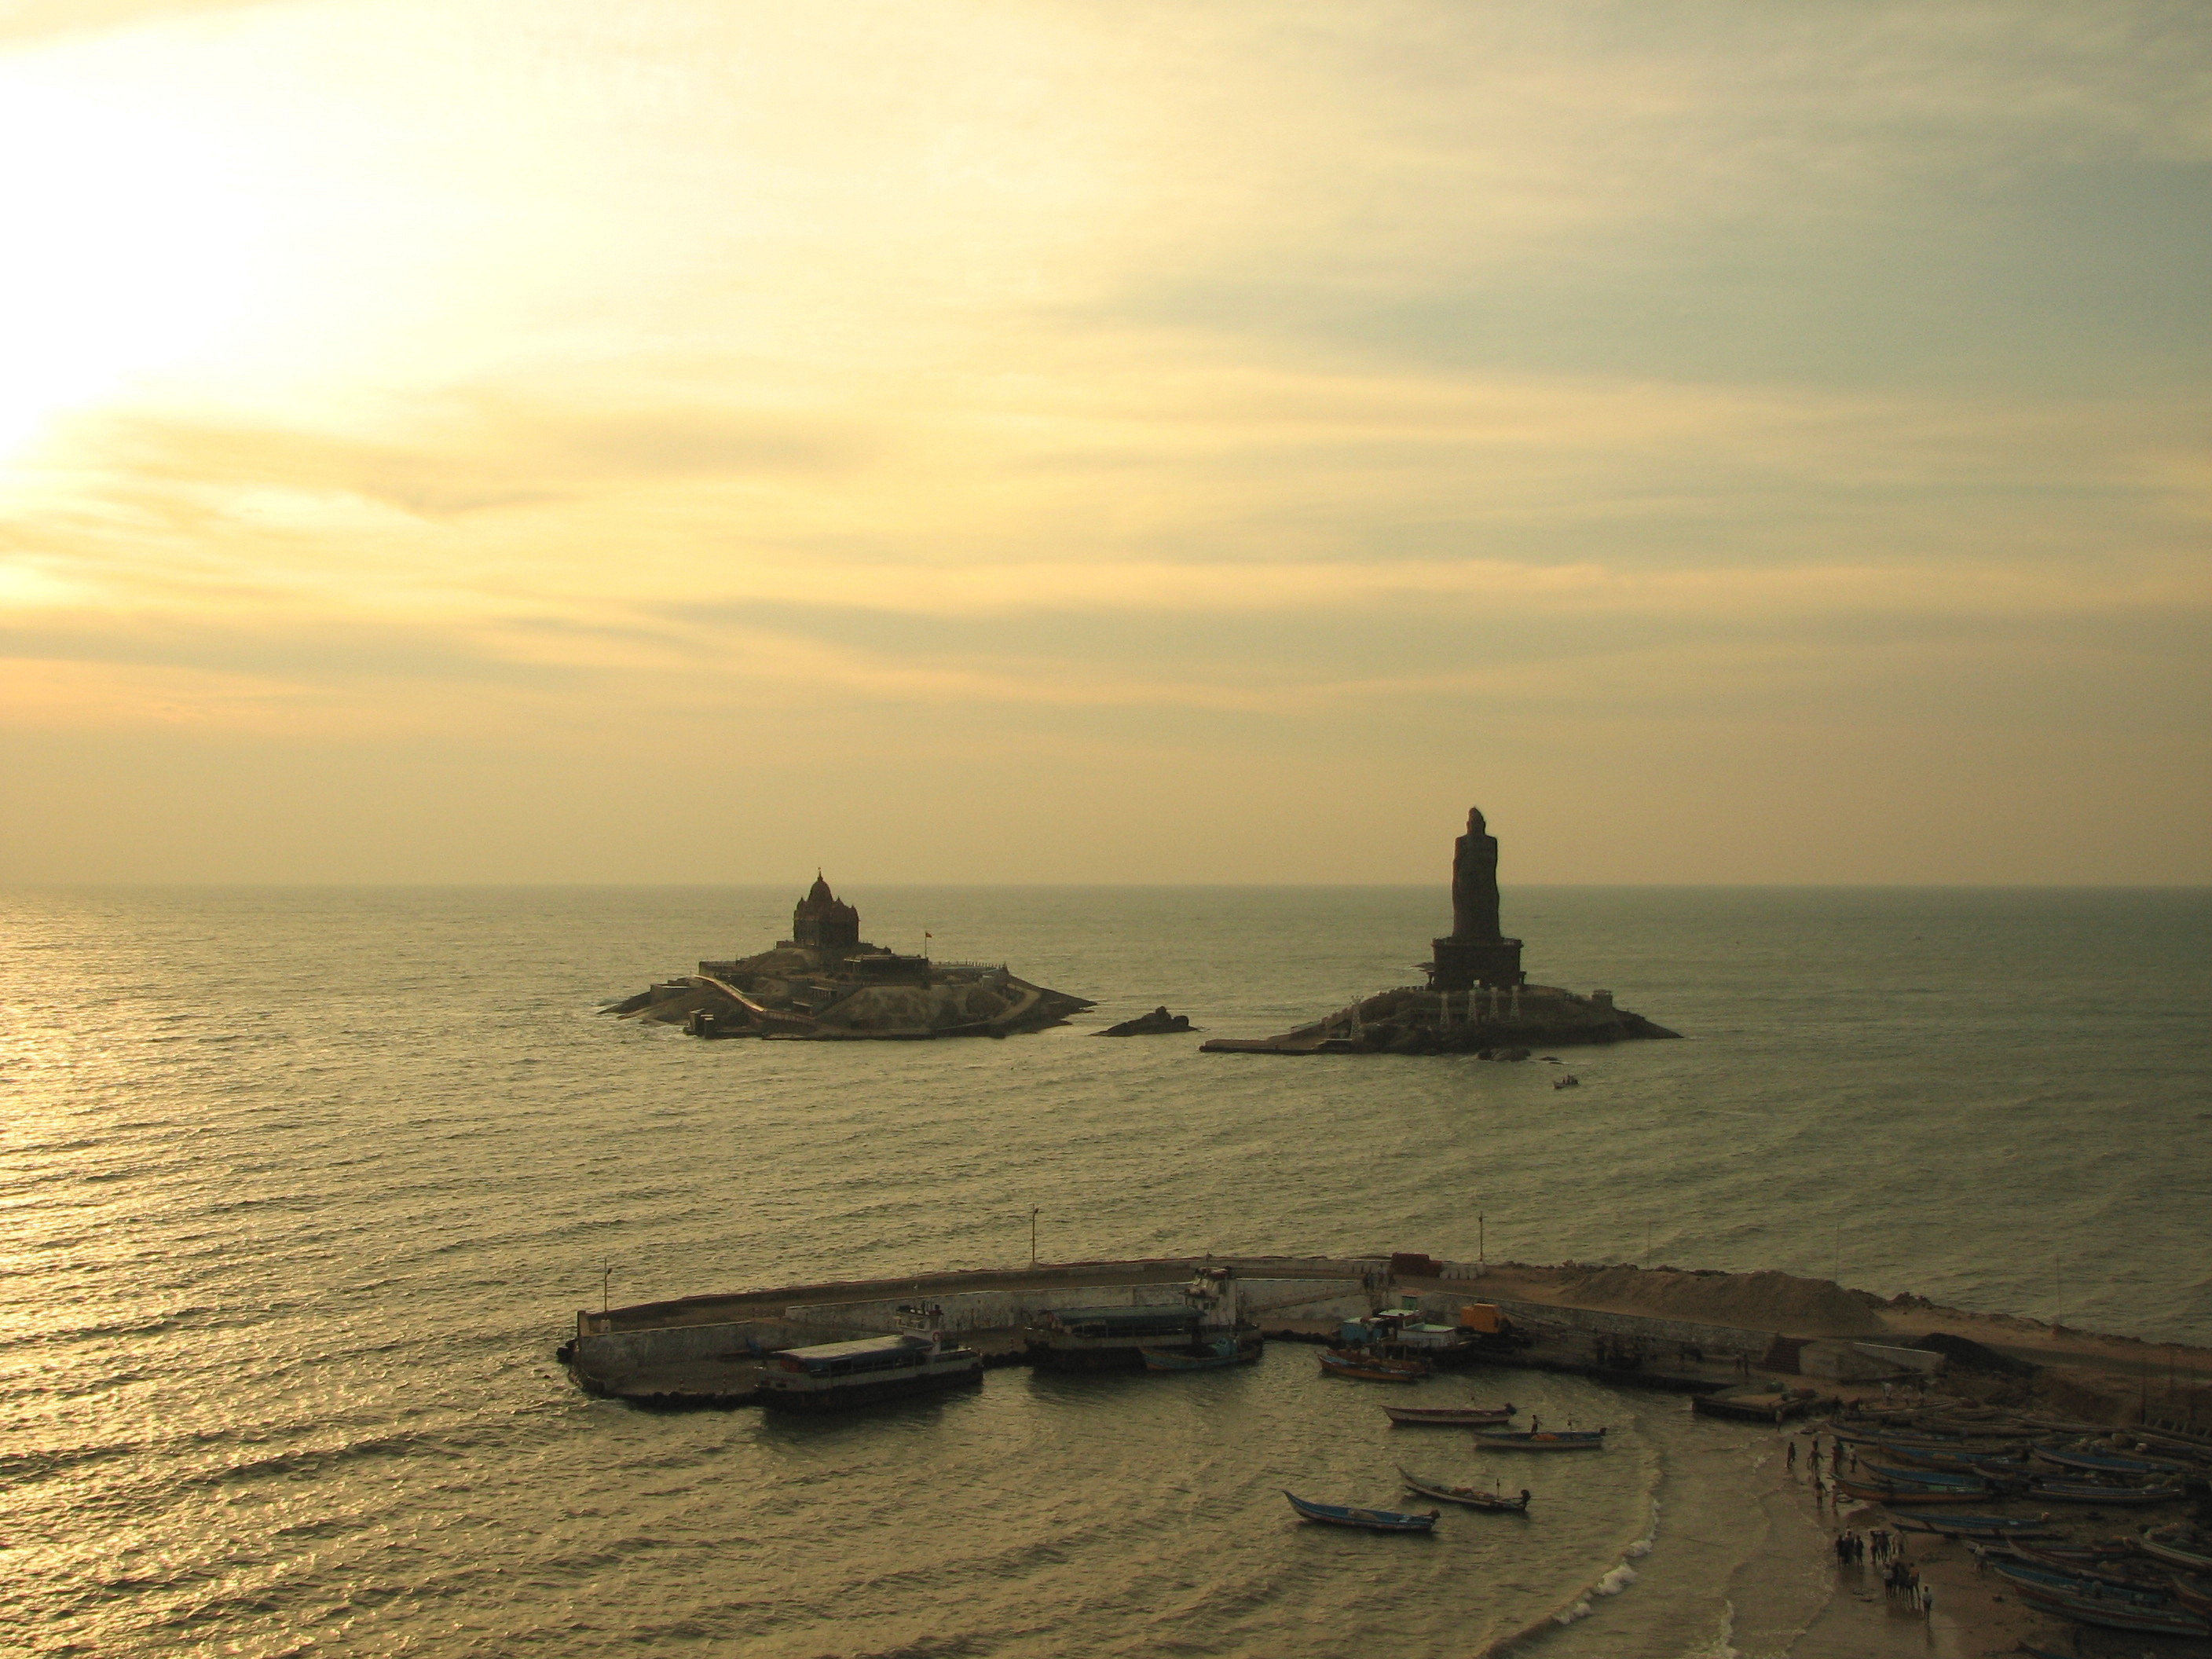 Vivekananda Rock Memorial and Thiruvalluvar Statue at sunrise